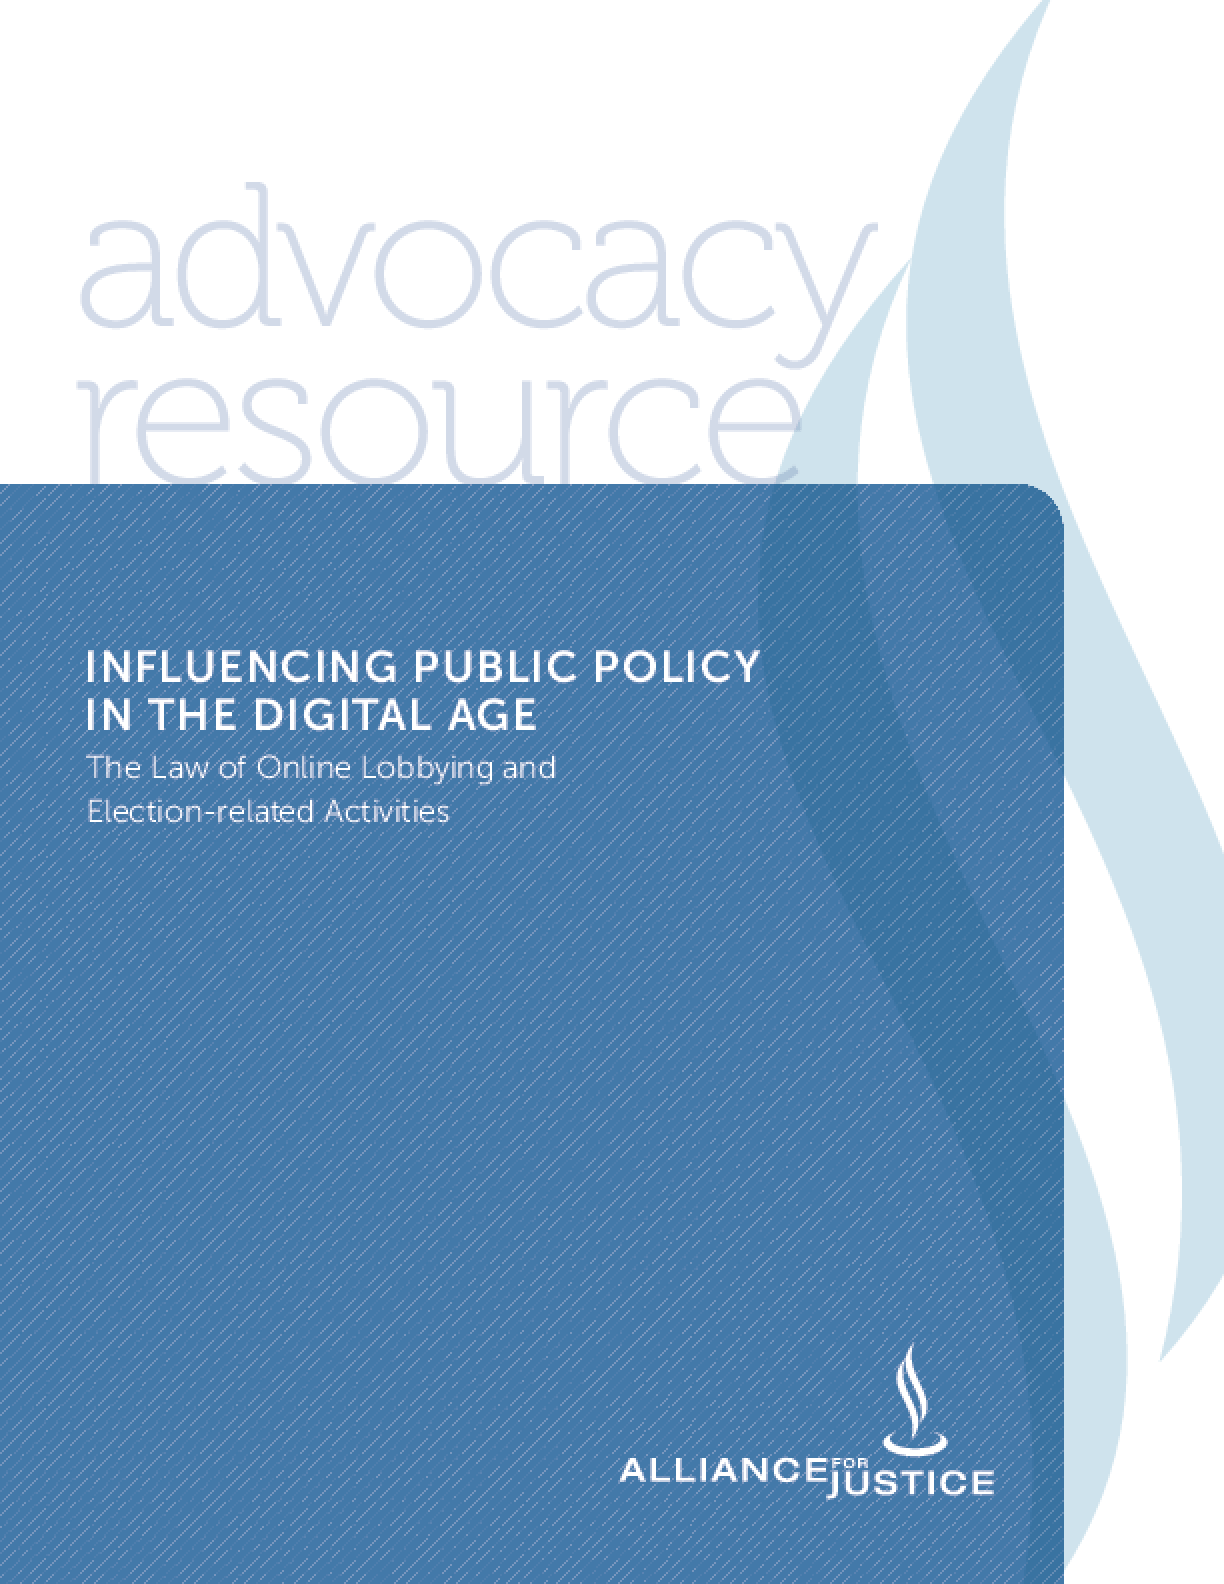 Influencing Public Policy in the Digital Age: The Law of Online Lobbying and Election-Related Activities